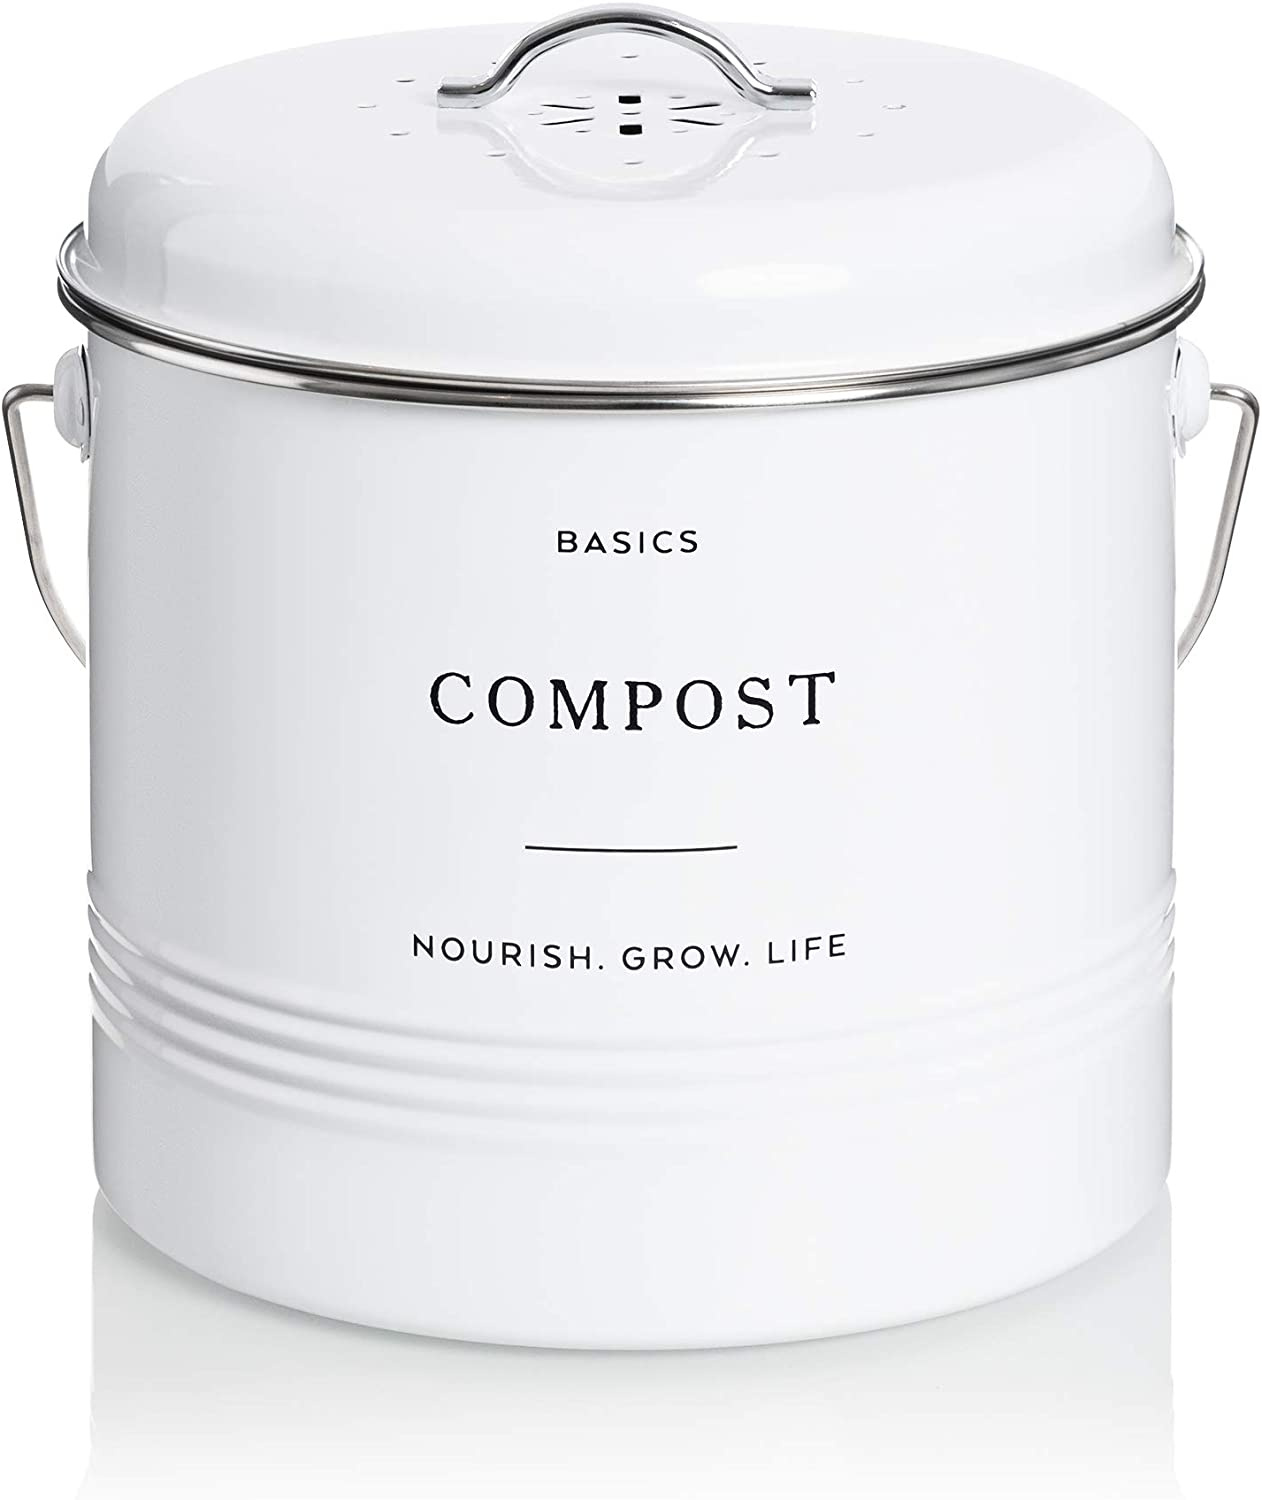 D'Lifeful Farmhouse Compost Bin Indoor Kitchen - Sealed with Airtight Lid - 1.3 Gallon Carbon Steel Compost Pail with Charcoal Filter - Stylish, White